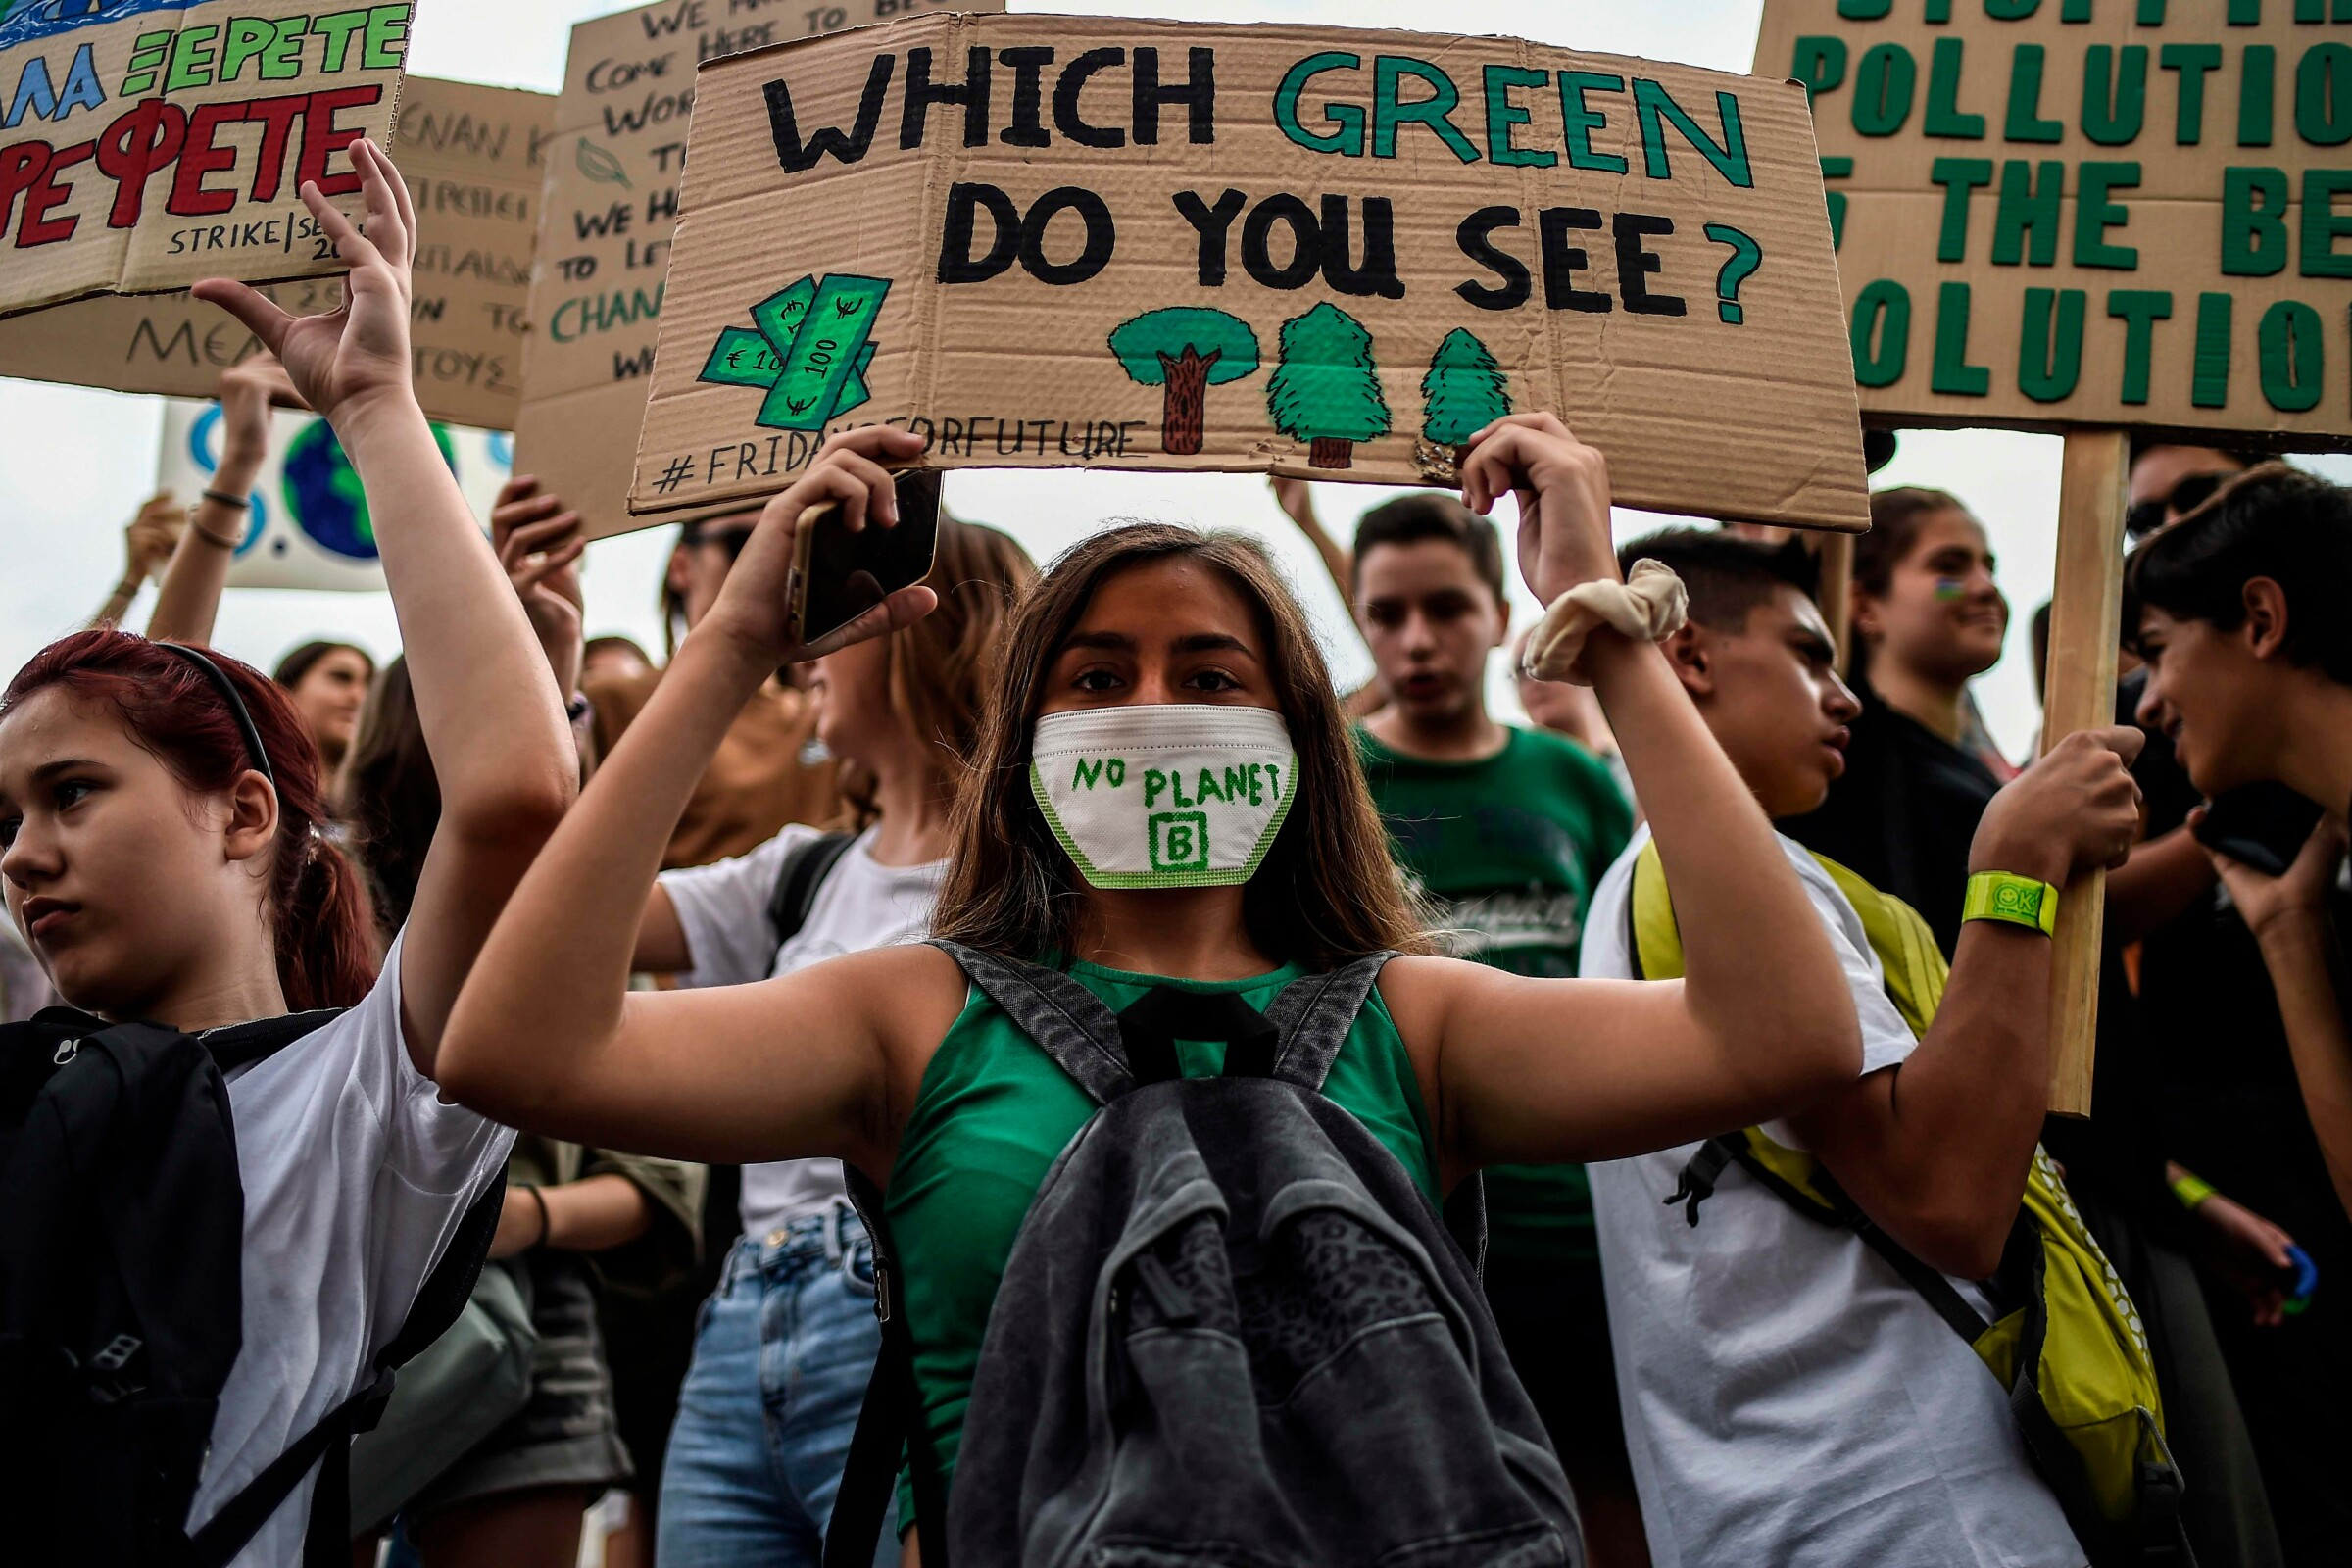 Protesters hold up signs against climate change